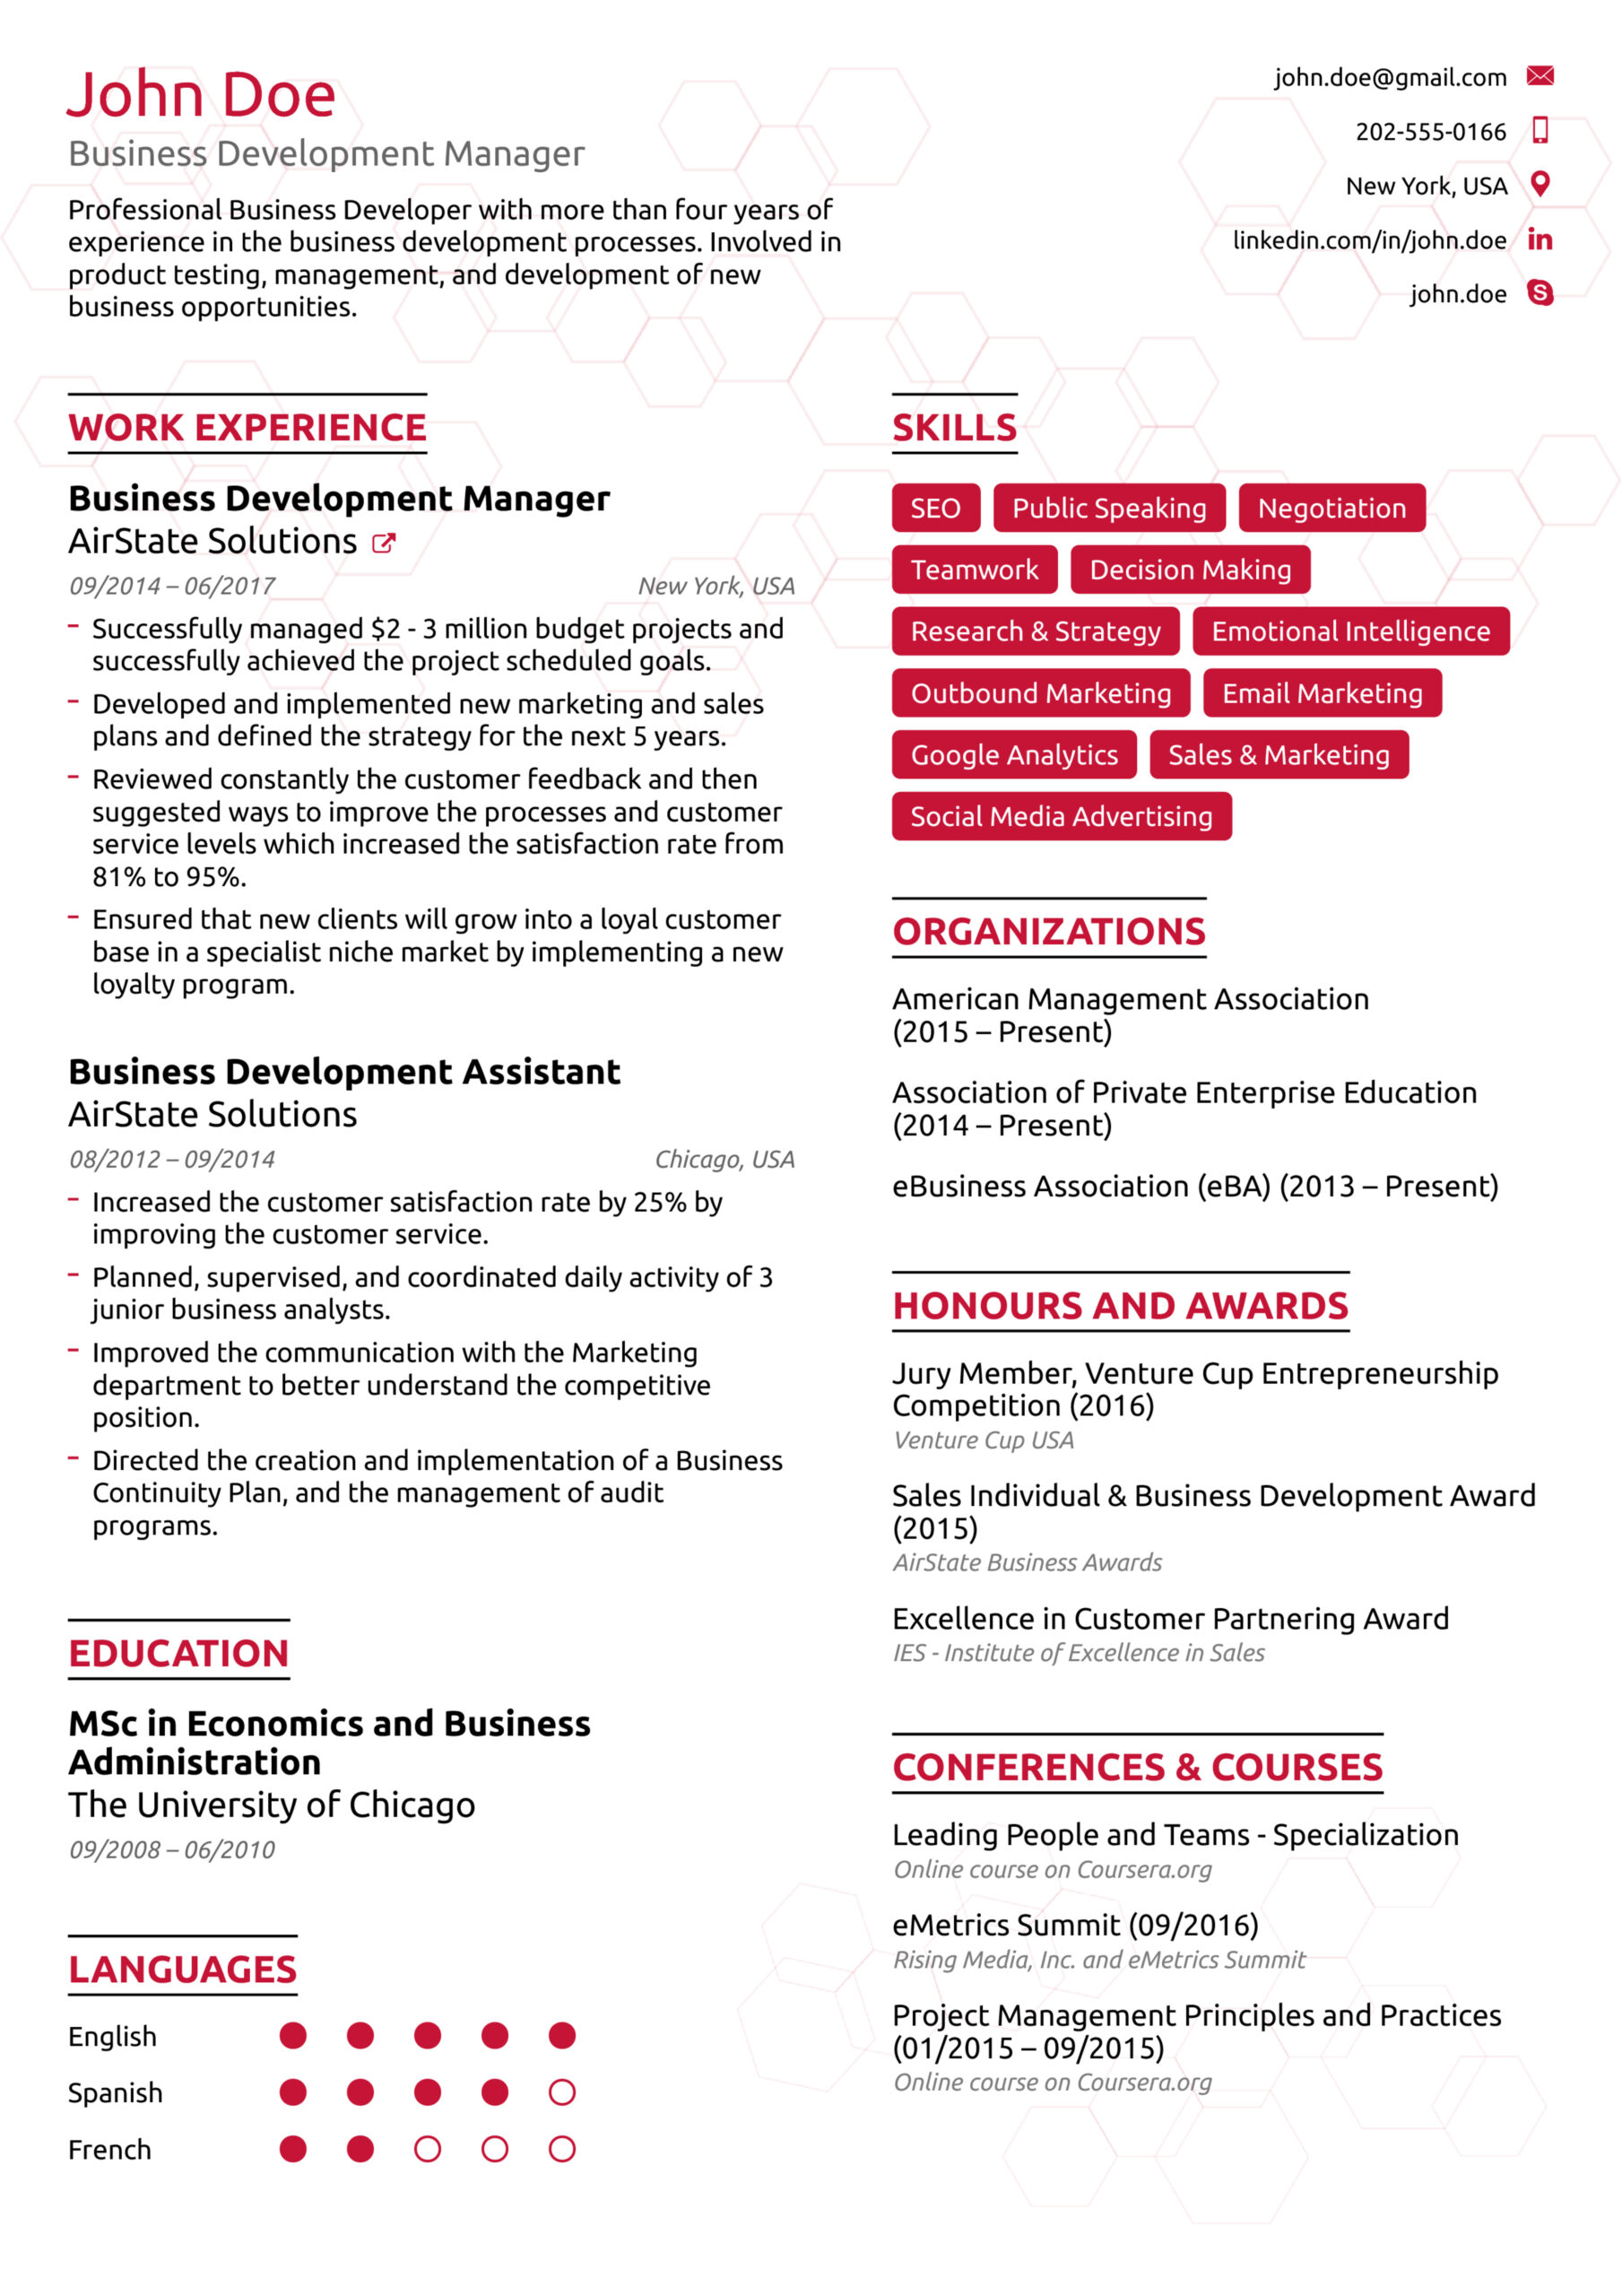 resume examples guides for any job best example conclusion of writing traits on good Resume Best Resume Examples 2019